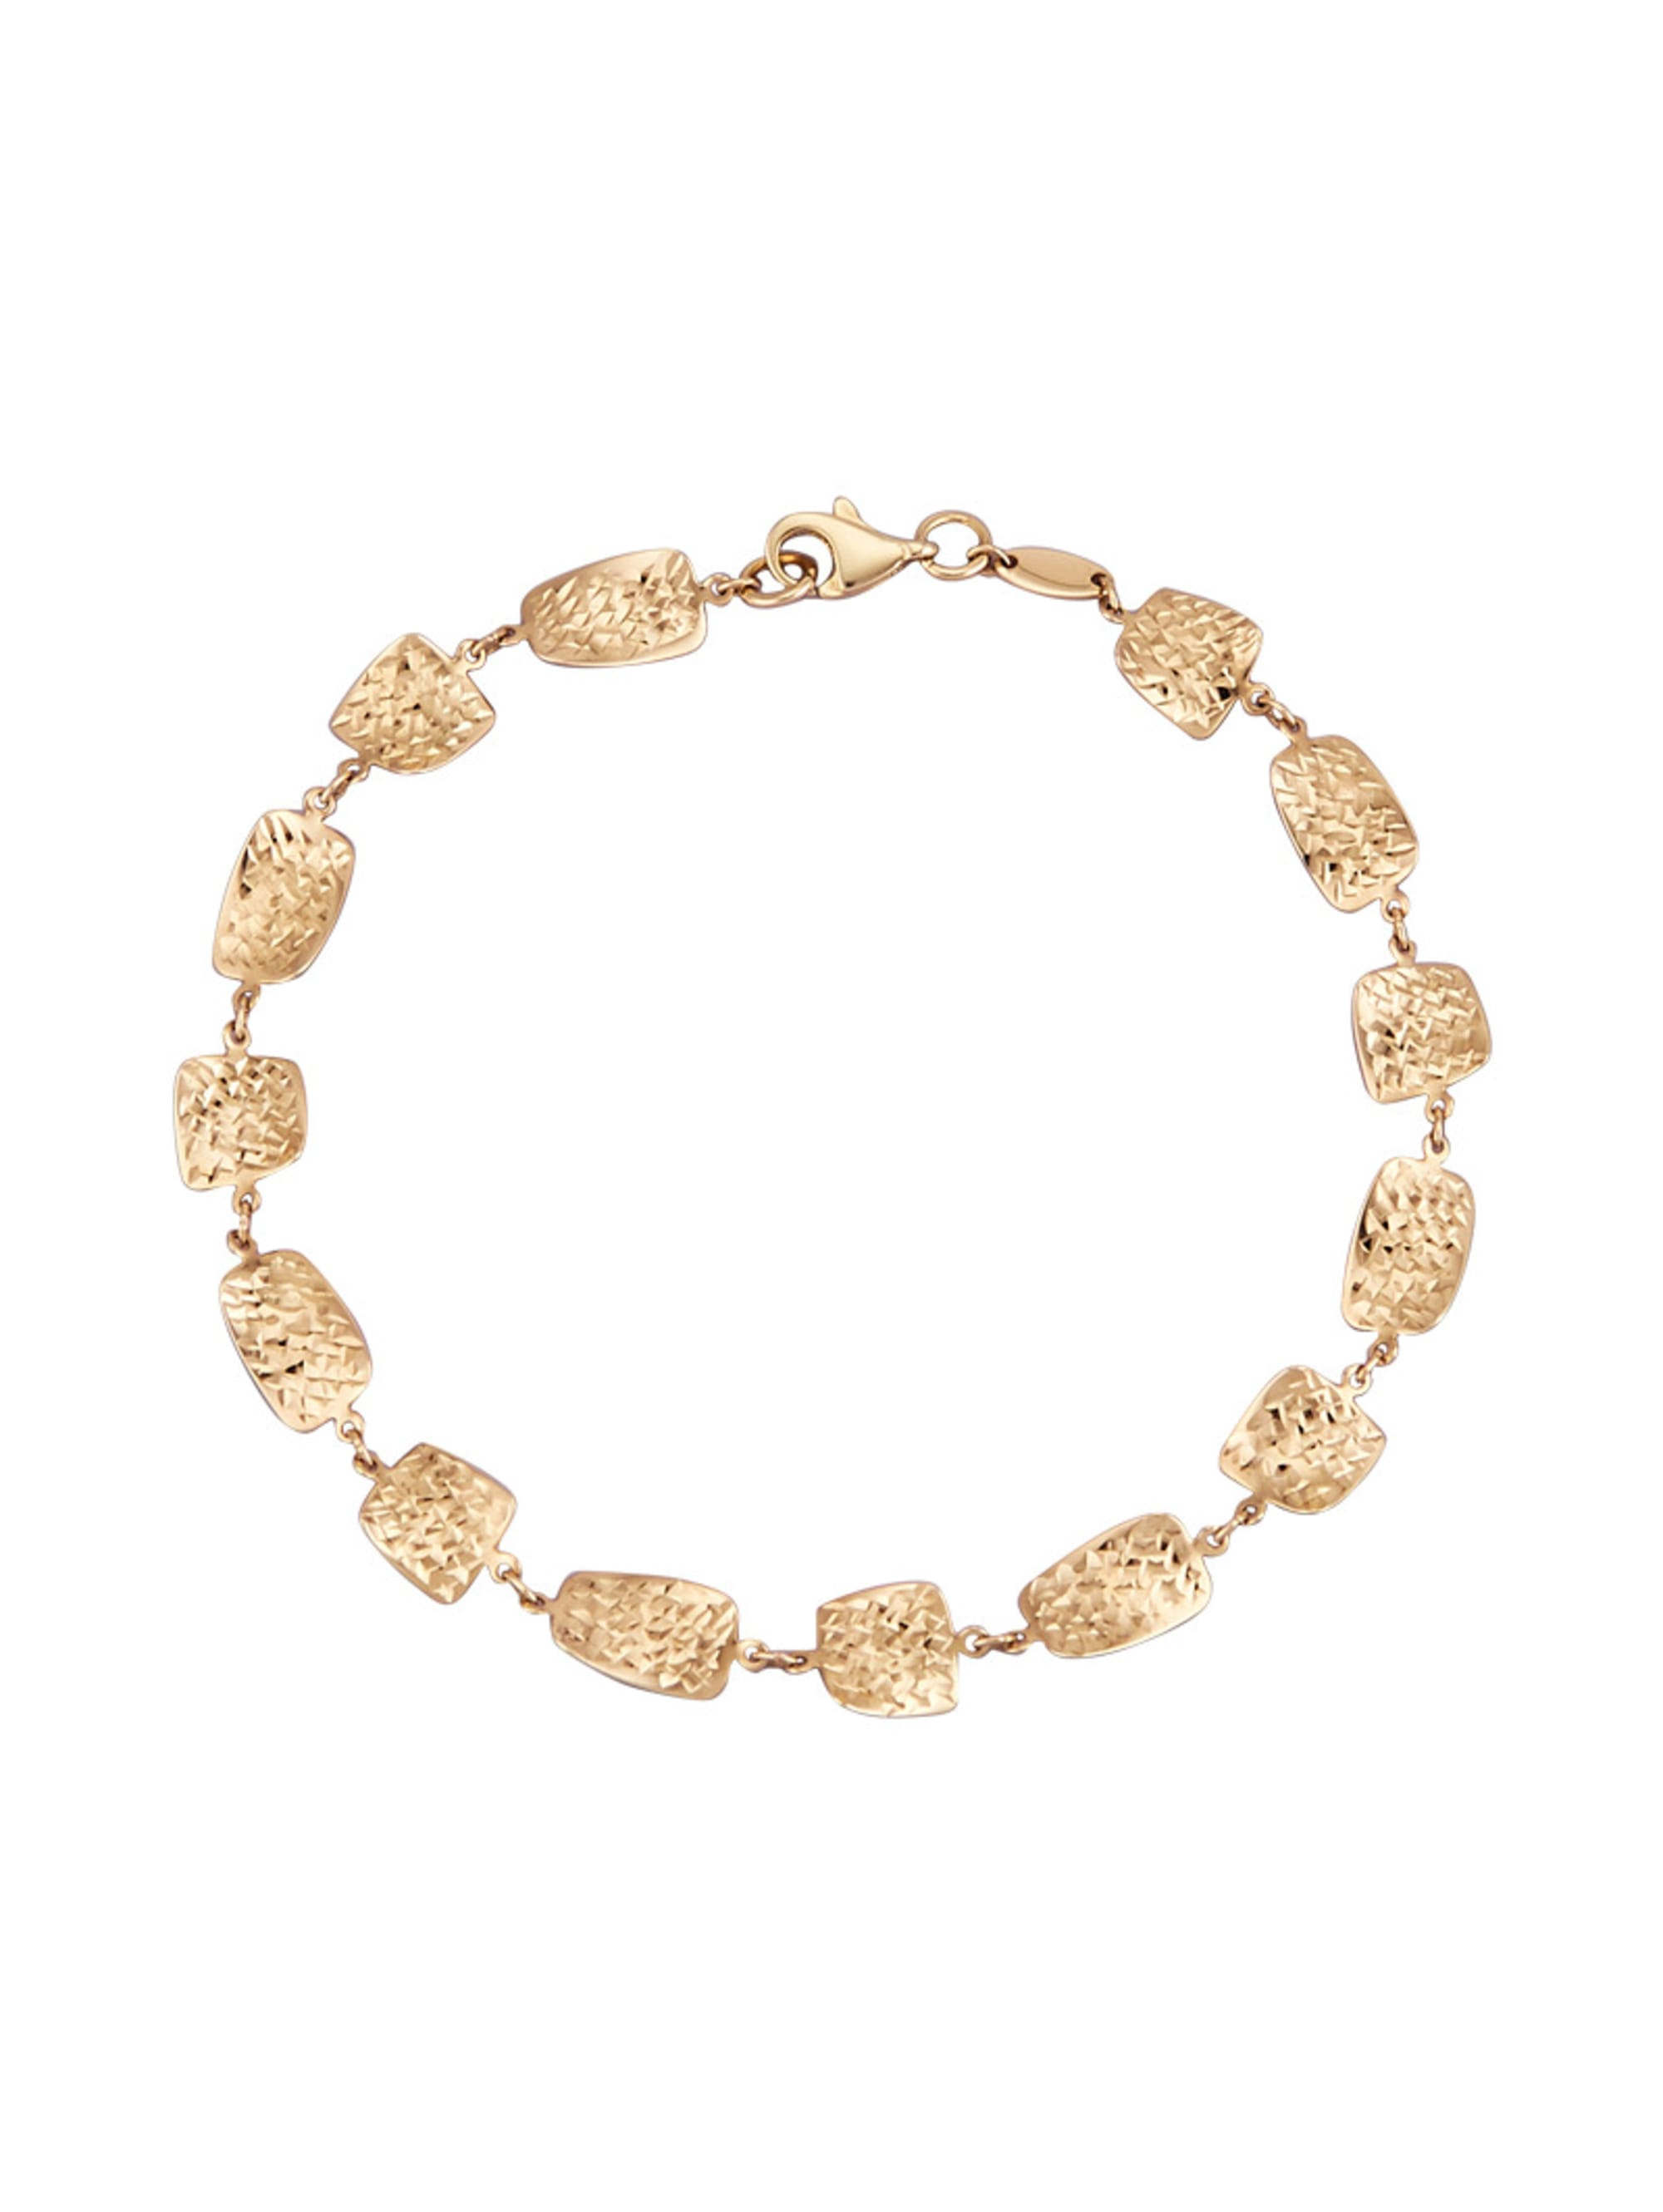 Armband in Gelbgold 375 N336d